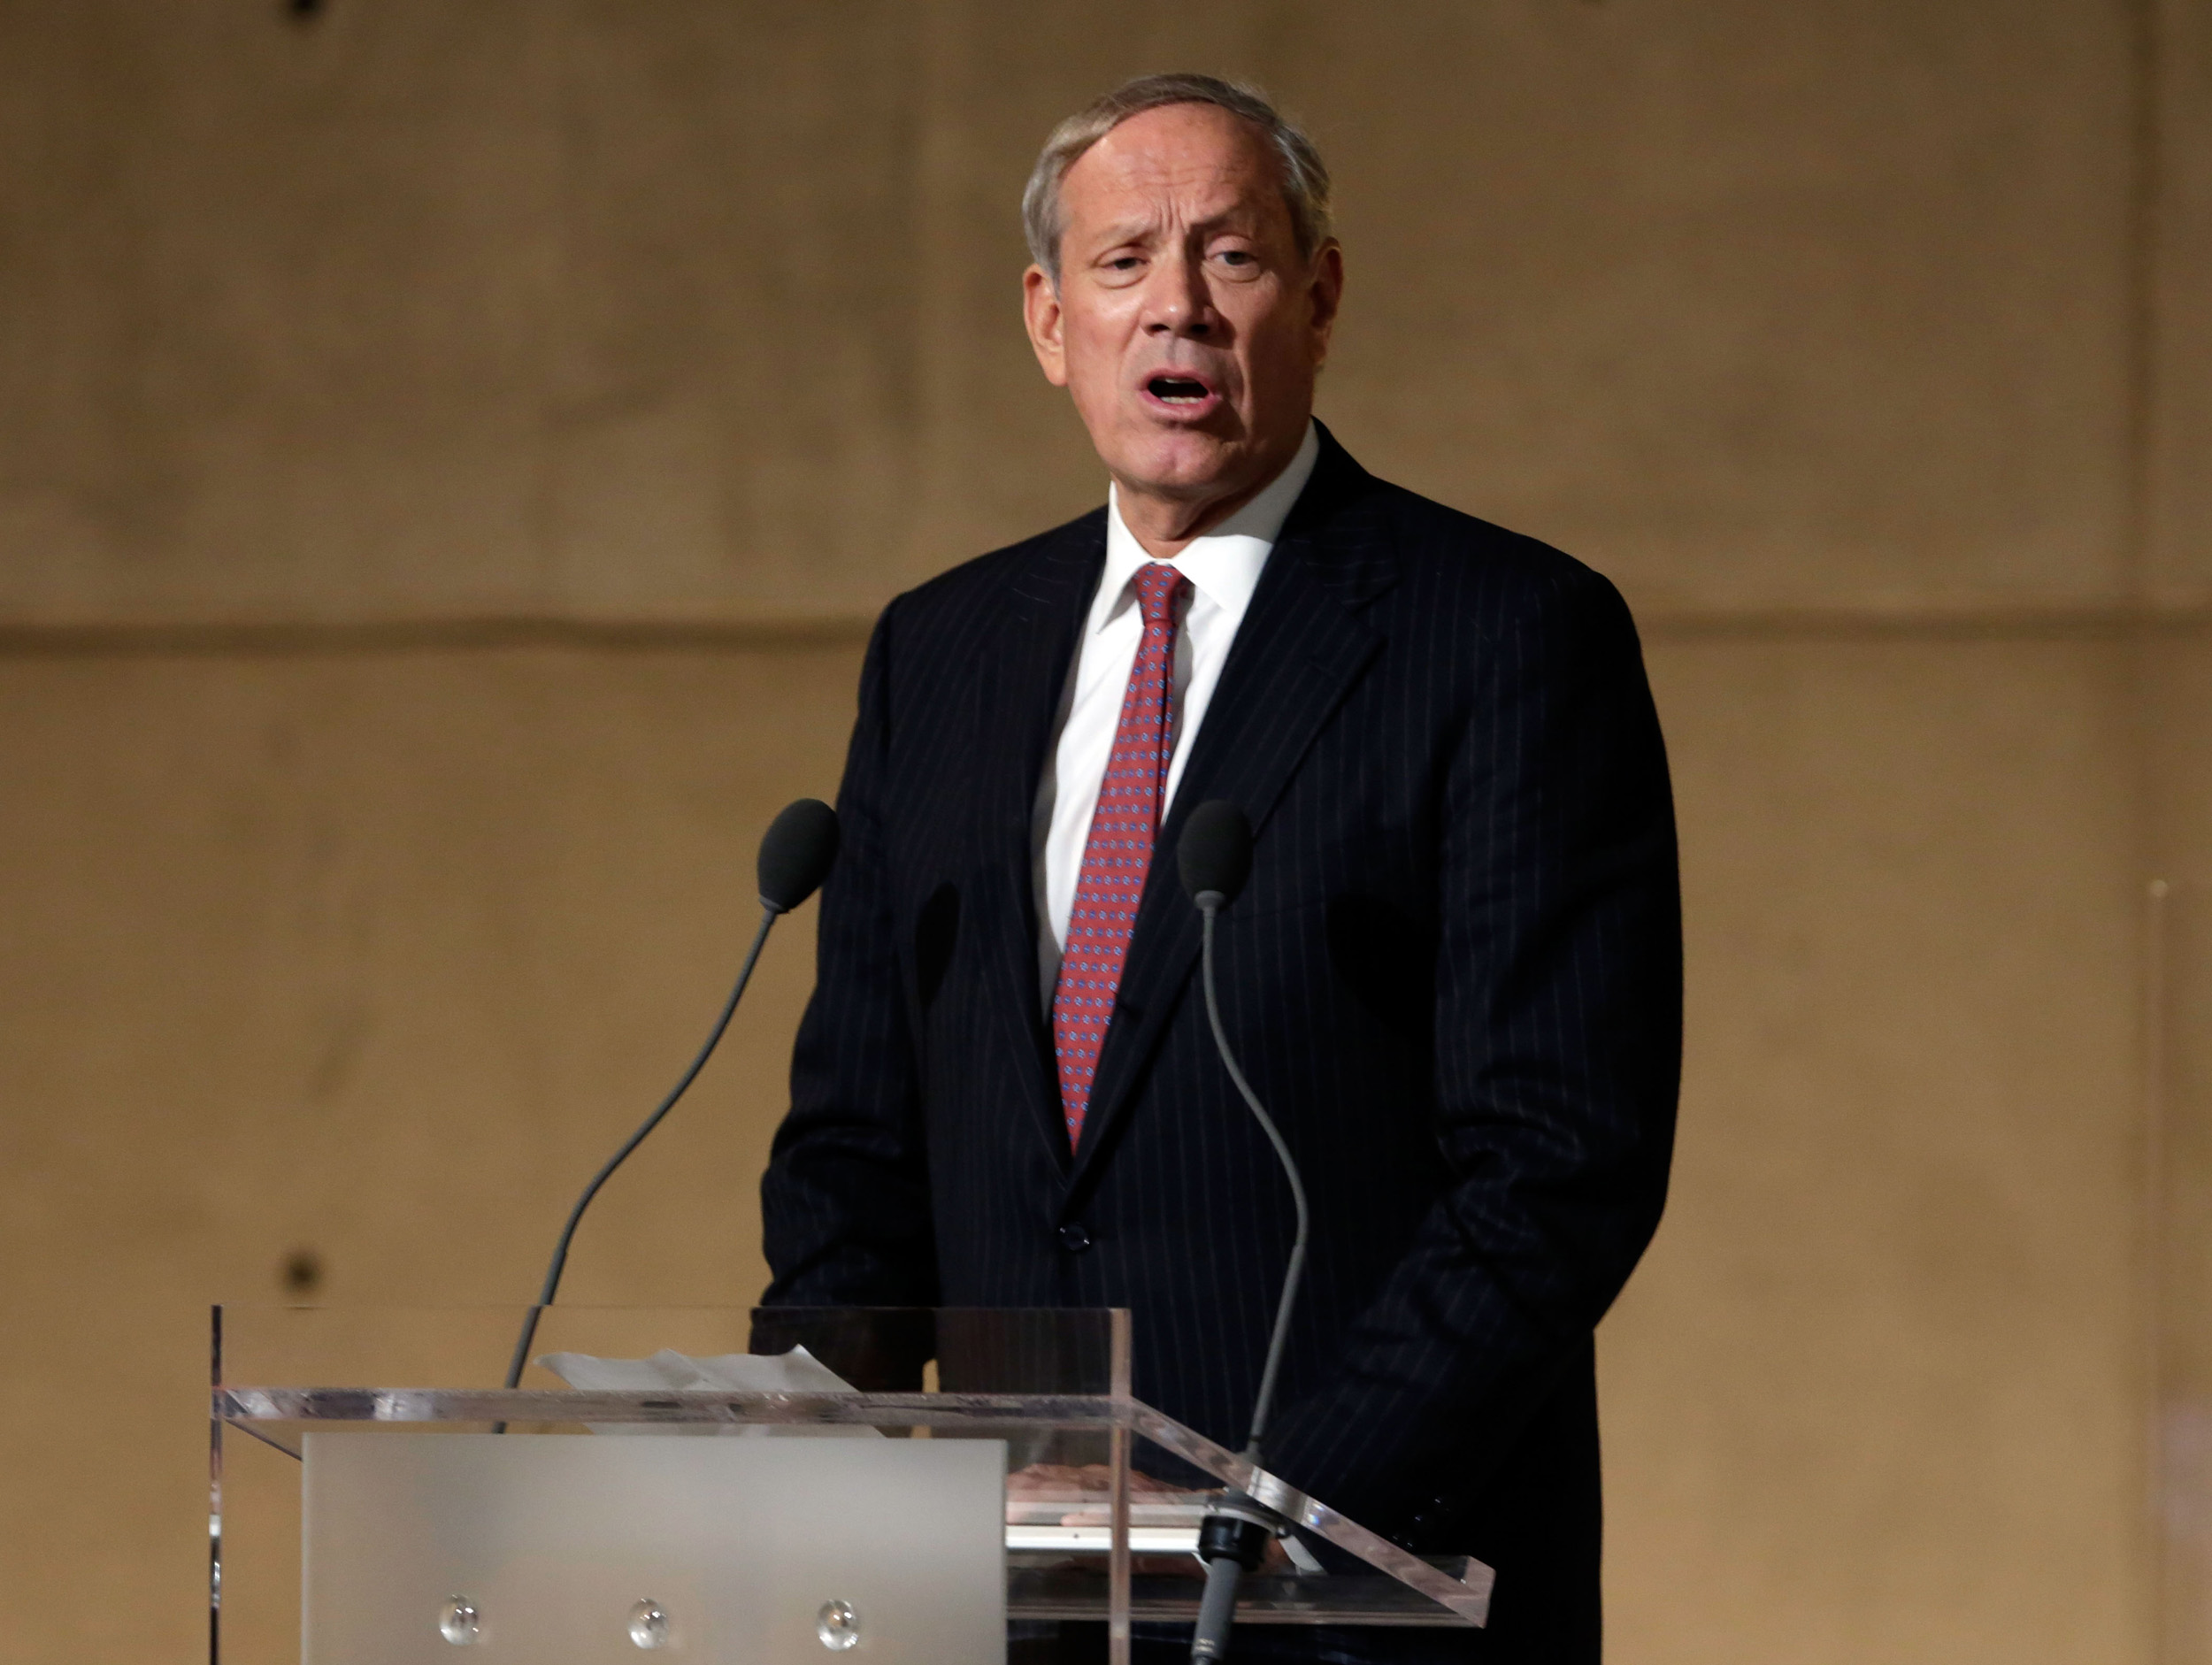 Former New York Gov. George Pataki speaks during the dedication ceremony in Foundation Hall at the National September 11 Memorial Museum at ground zero in New York City on May 15, 2014.